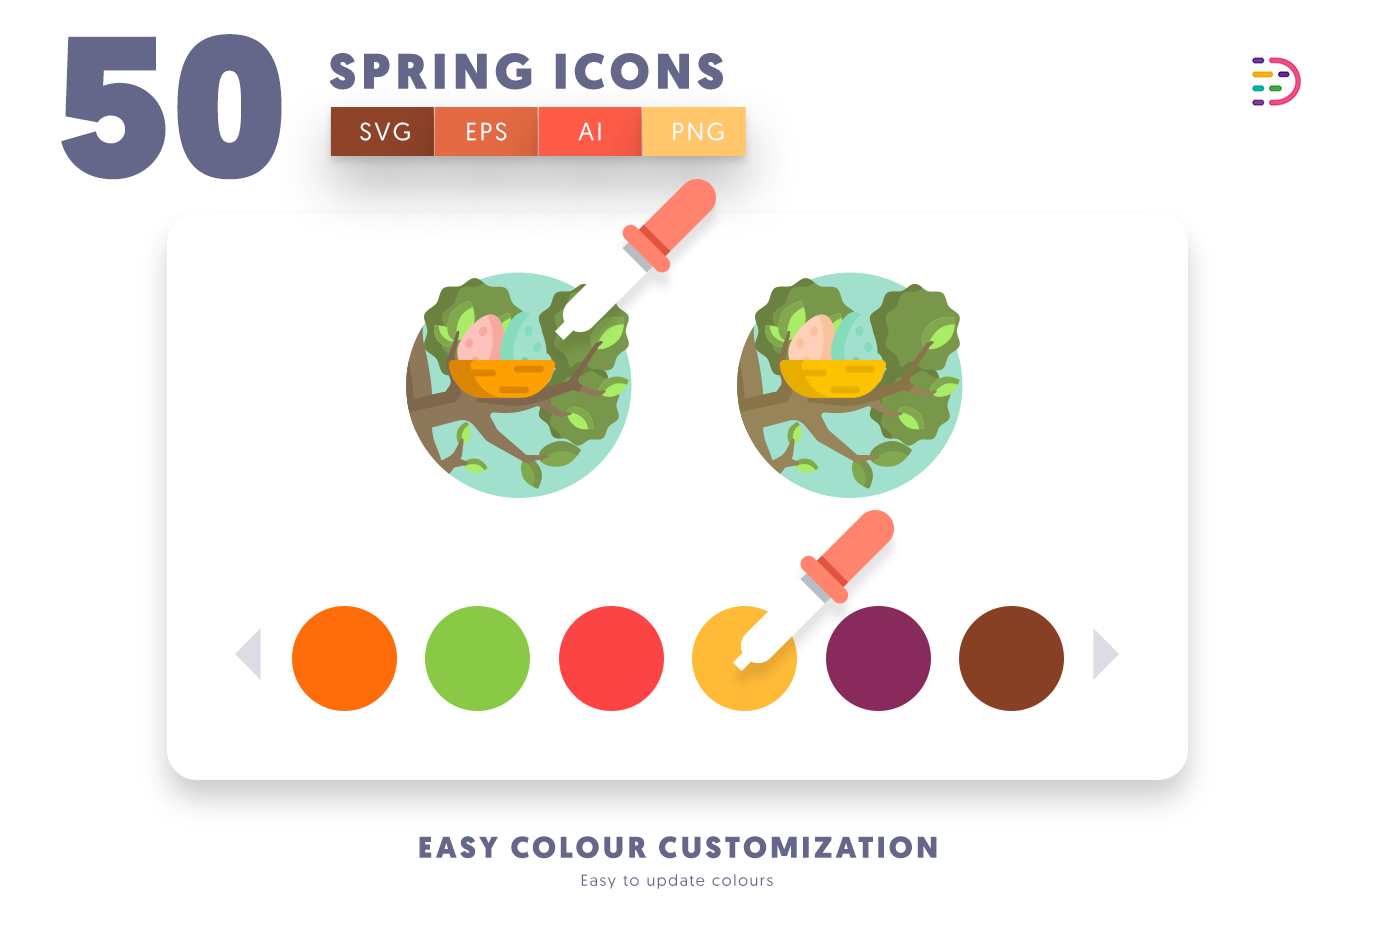 EPS, SVG, PNG full vector 50 Spring Icons